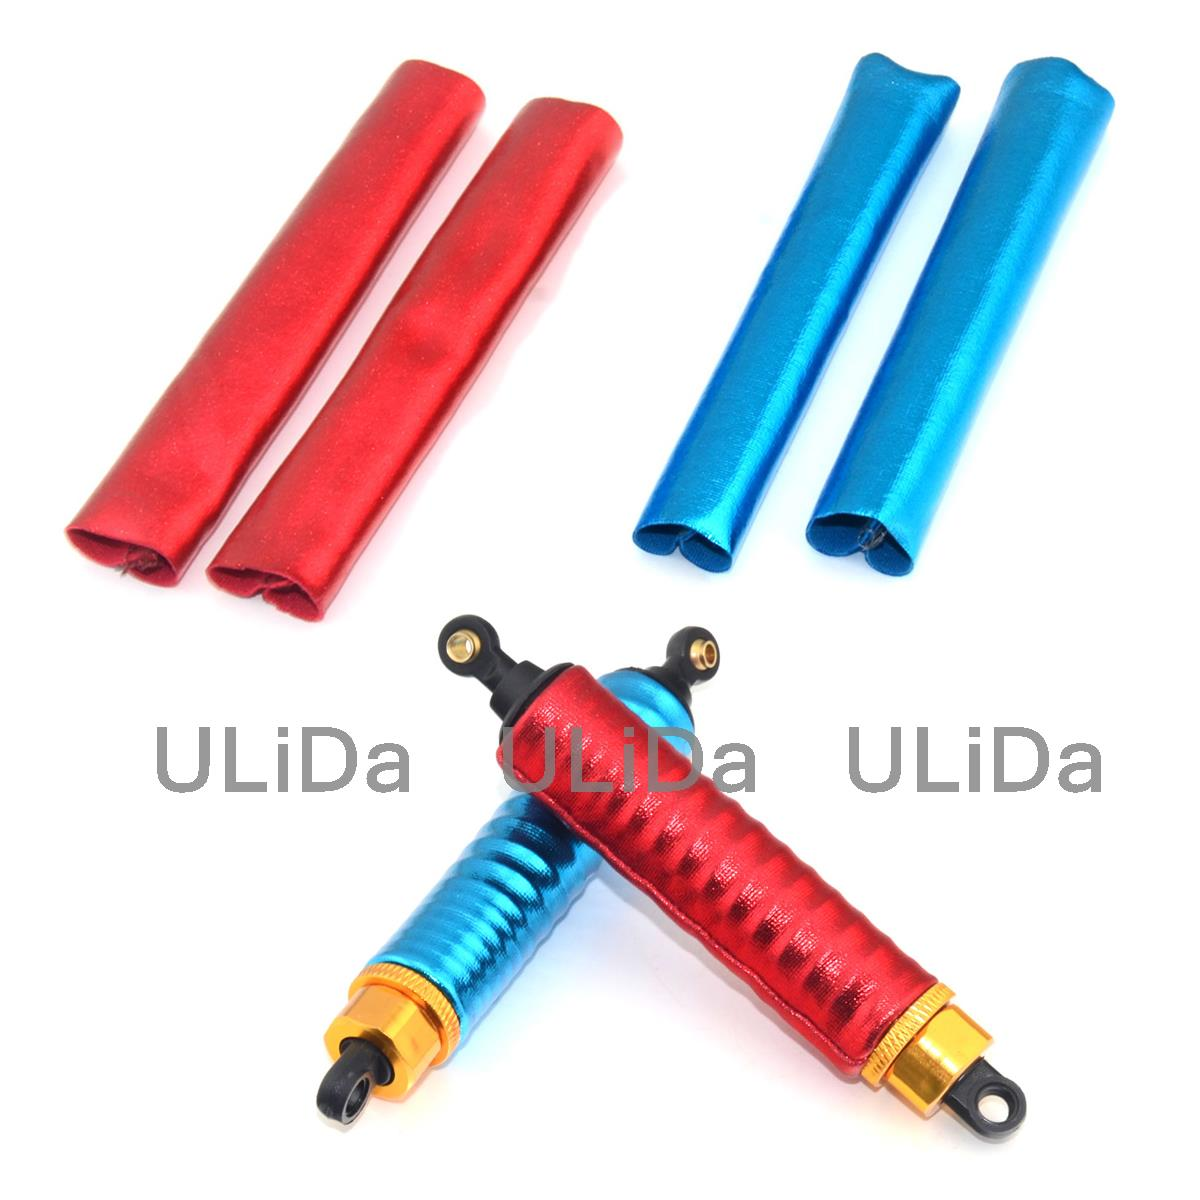 4pcs Shock Absorber Cover Dust-Proof Guard For 1/10 Scale RC Car Truck Buggy HSP HPI Traxxas Redcat Racing Himoto 108004 122004